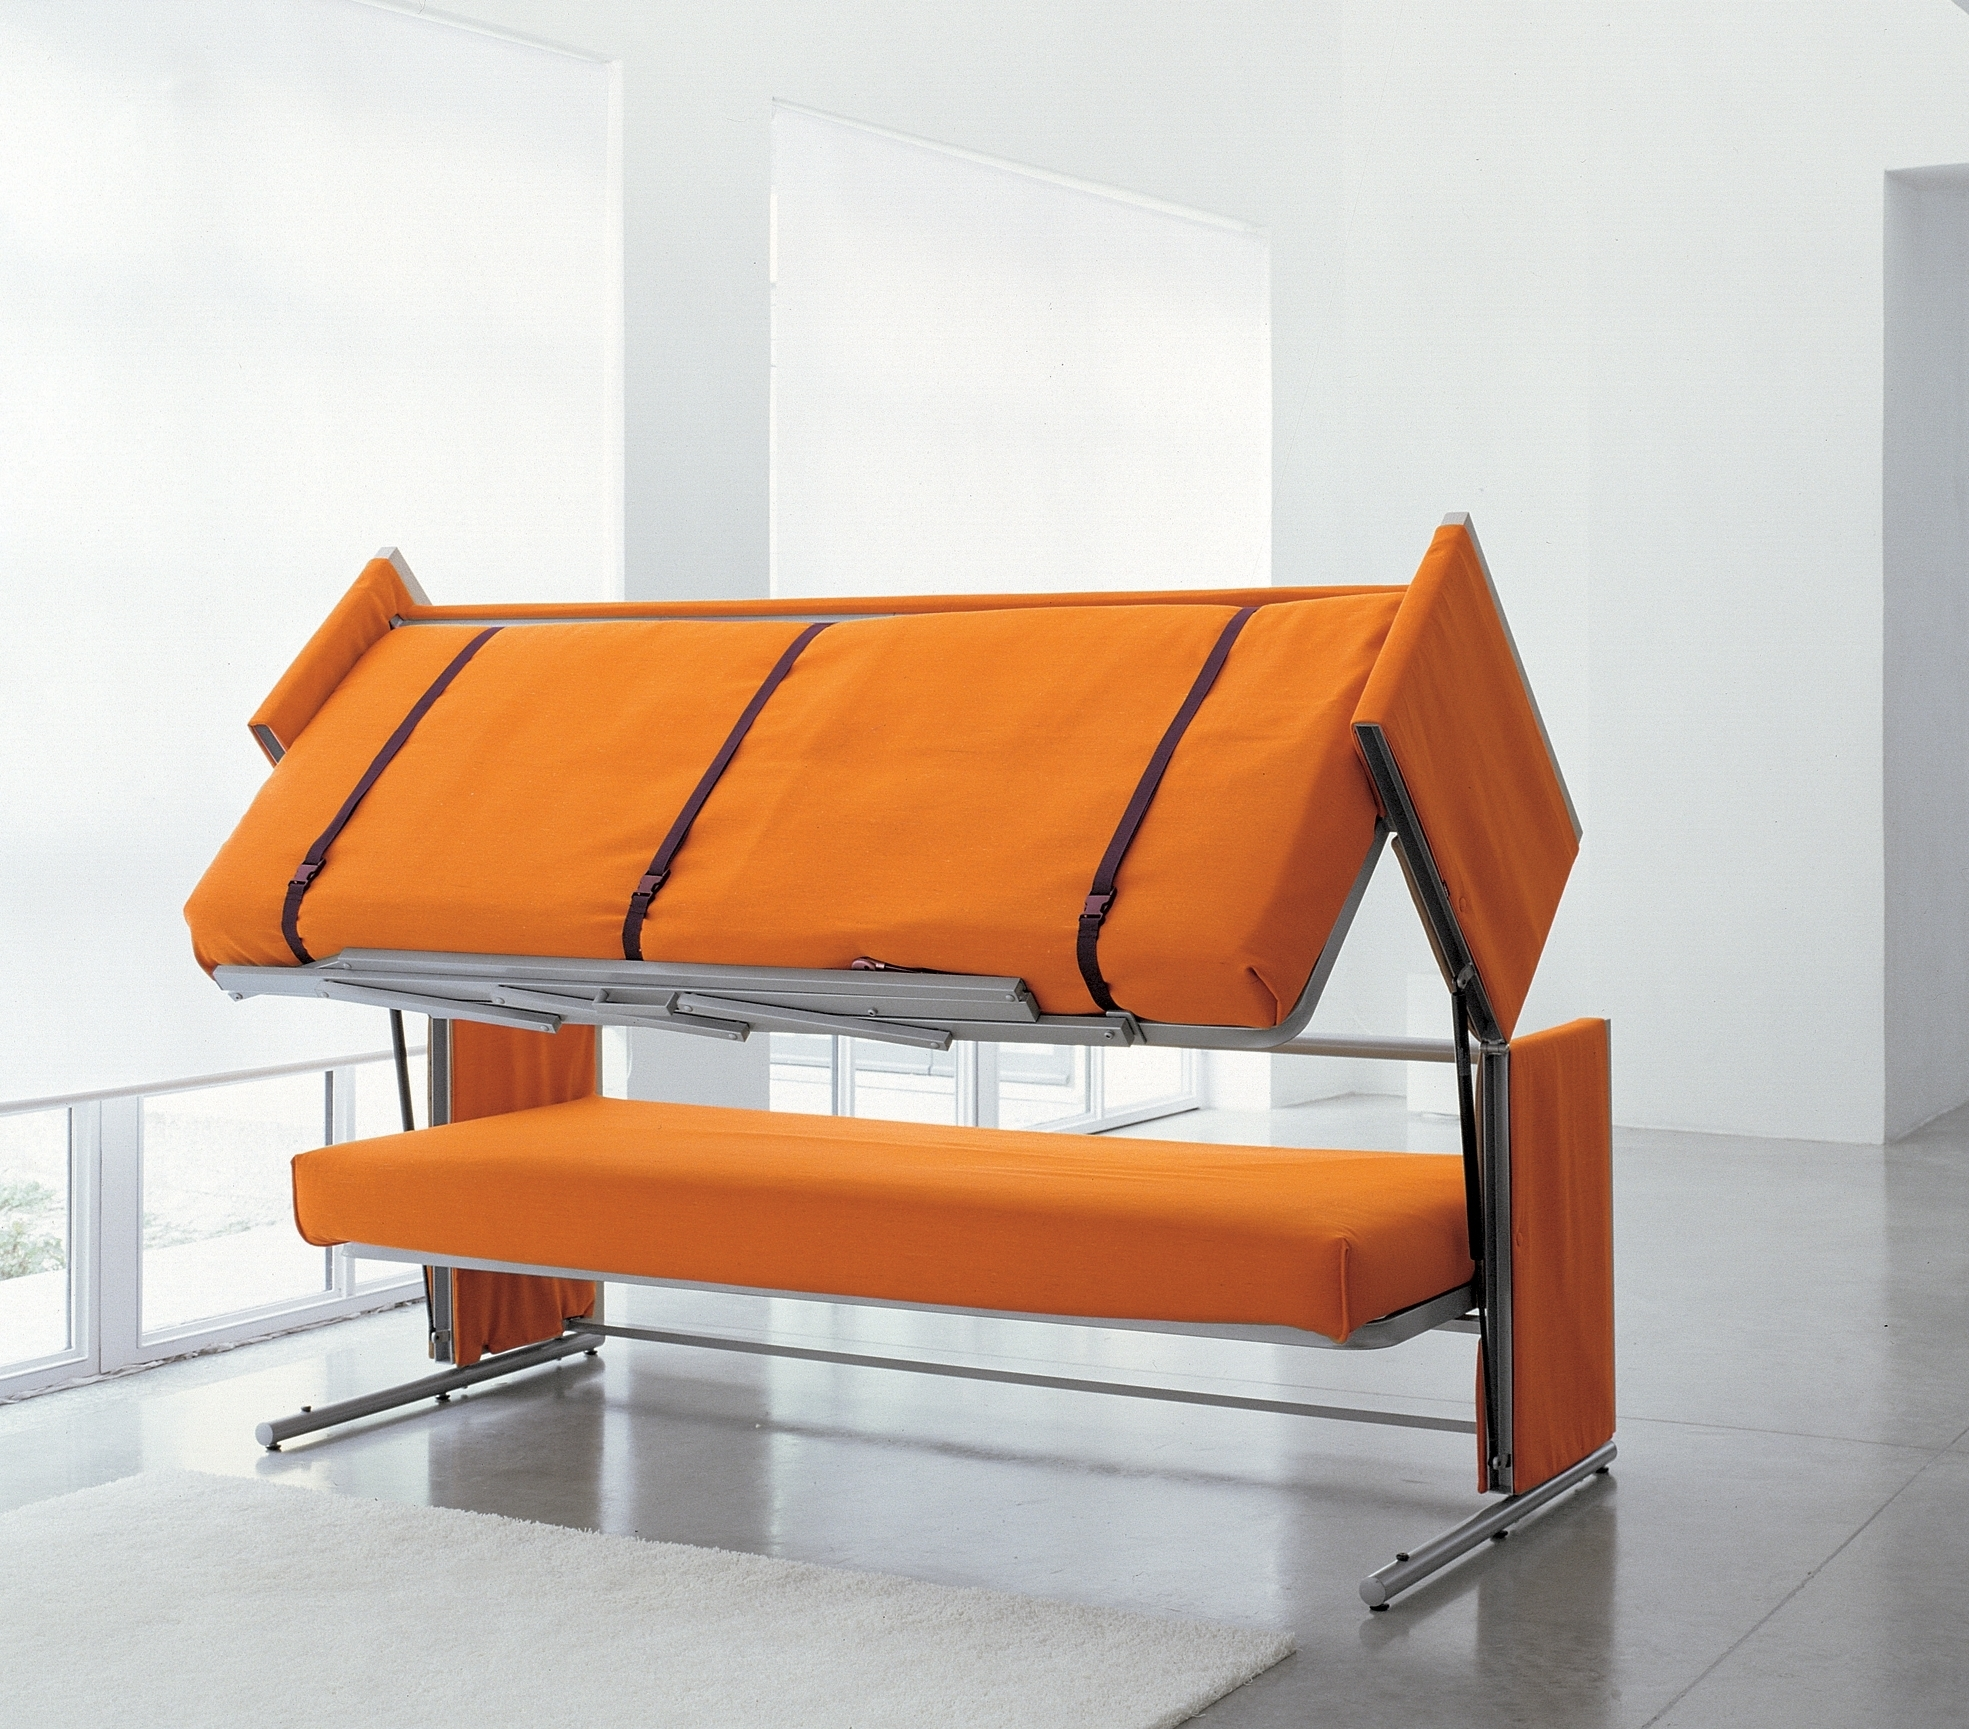 Doc Sofa Bunk Bed Bonbon Design • Sofa Bed In Fashionable Sofa Bunk Beds (View 3 of 20)